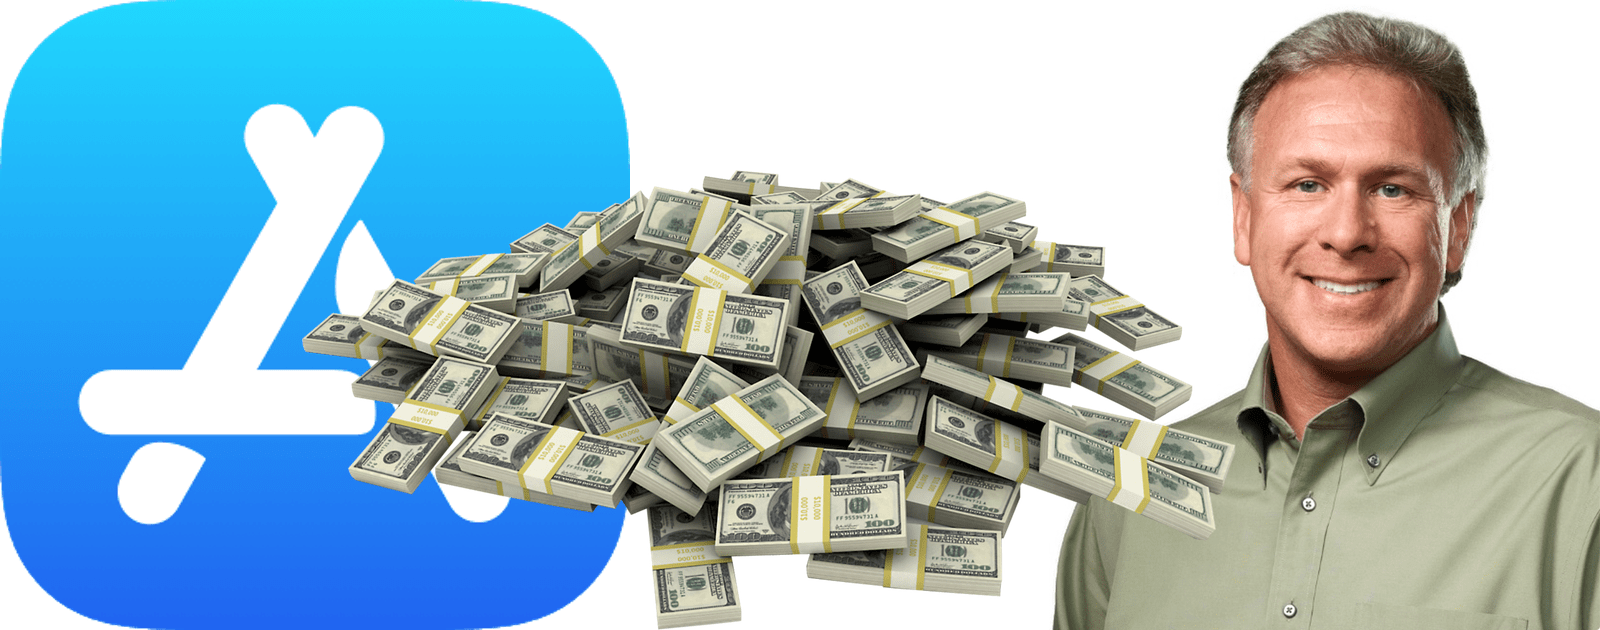 image of phil schiller, app store icon, and cash pile